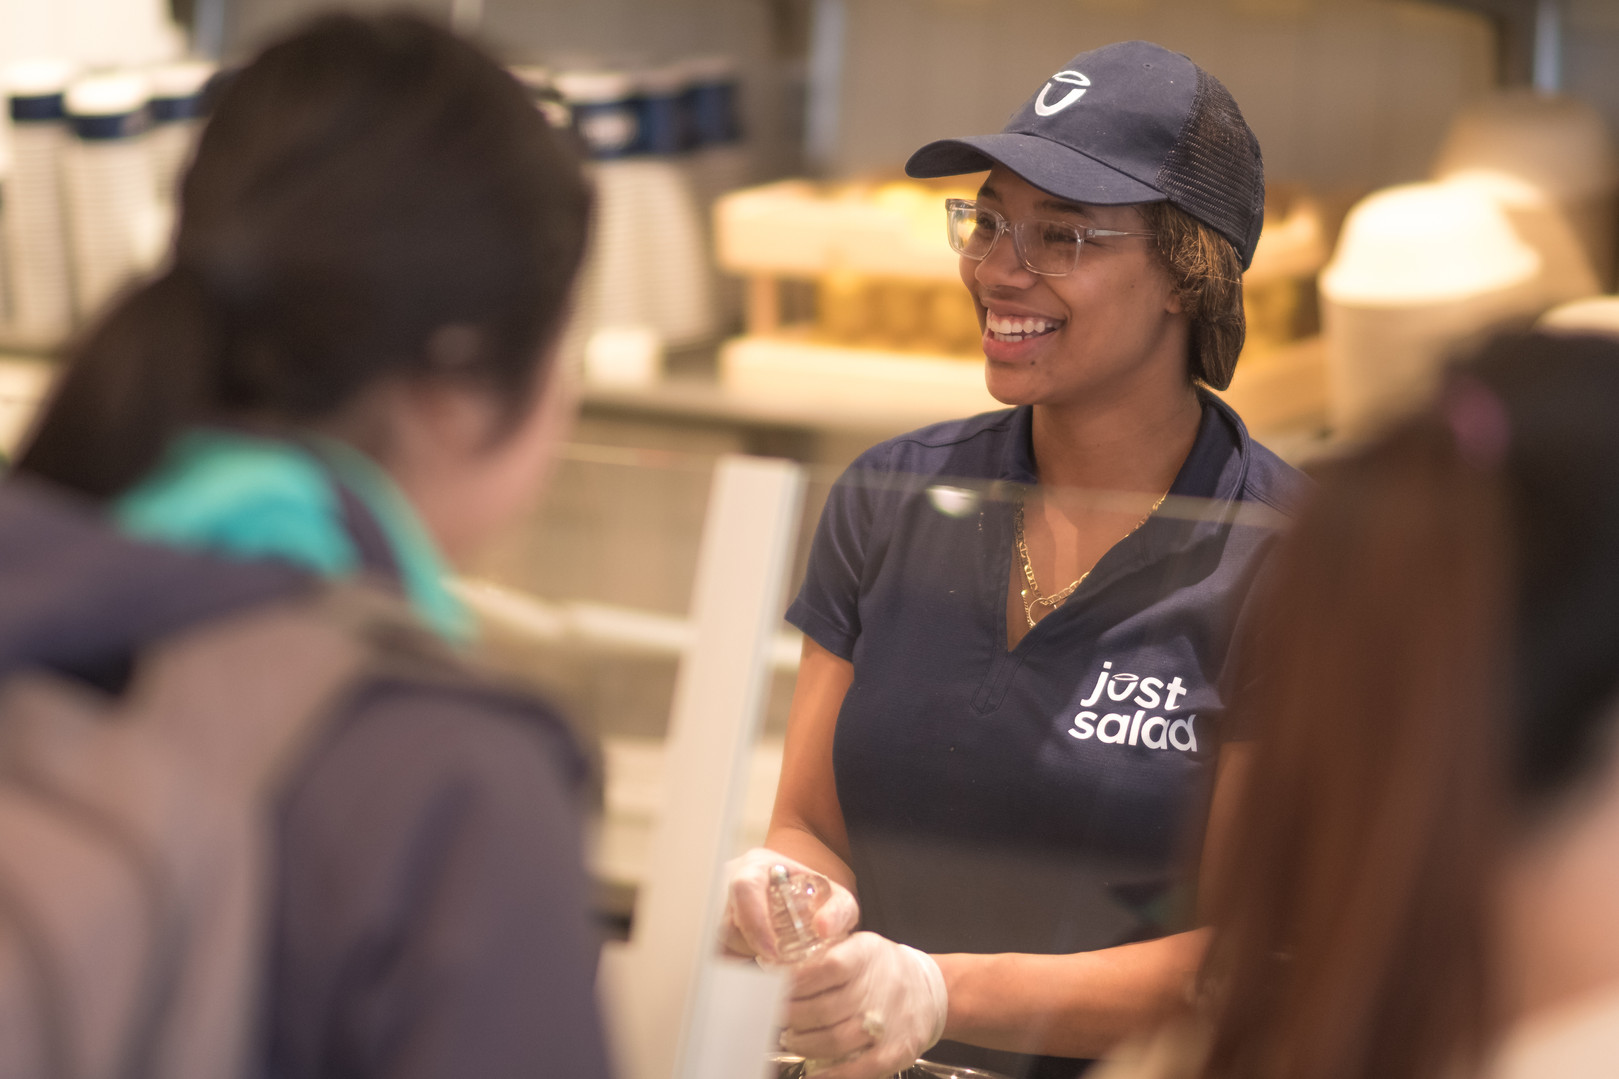 Just Salad - Philly Grand Opening-23.jpg